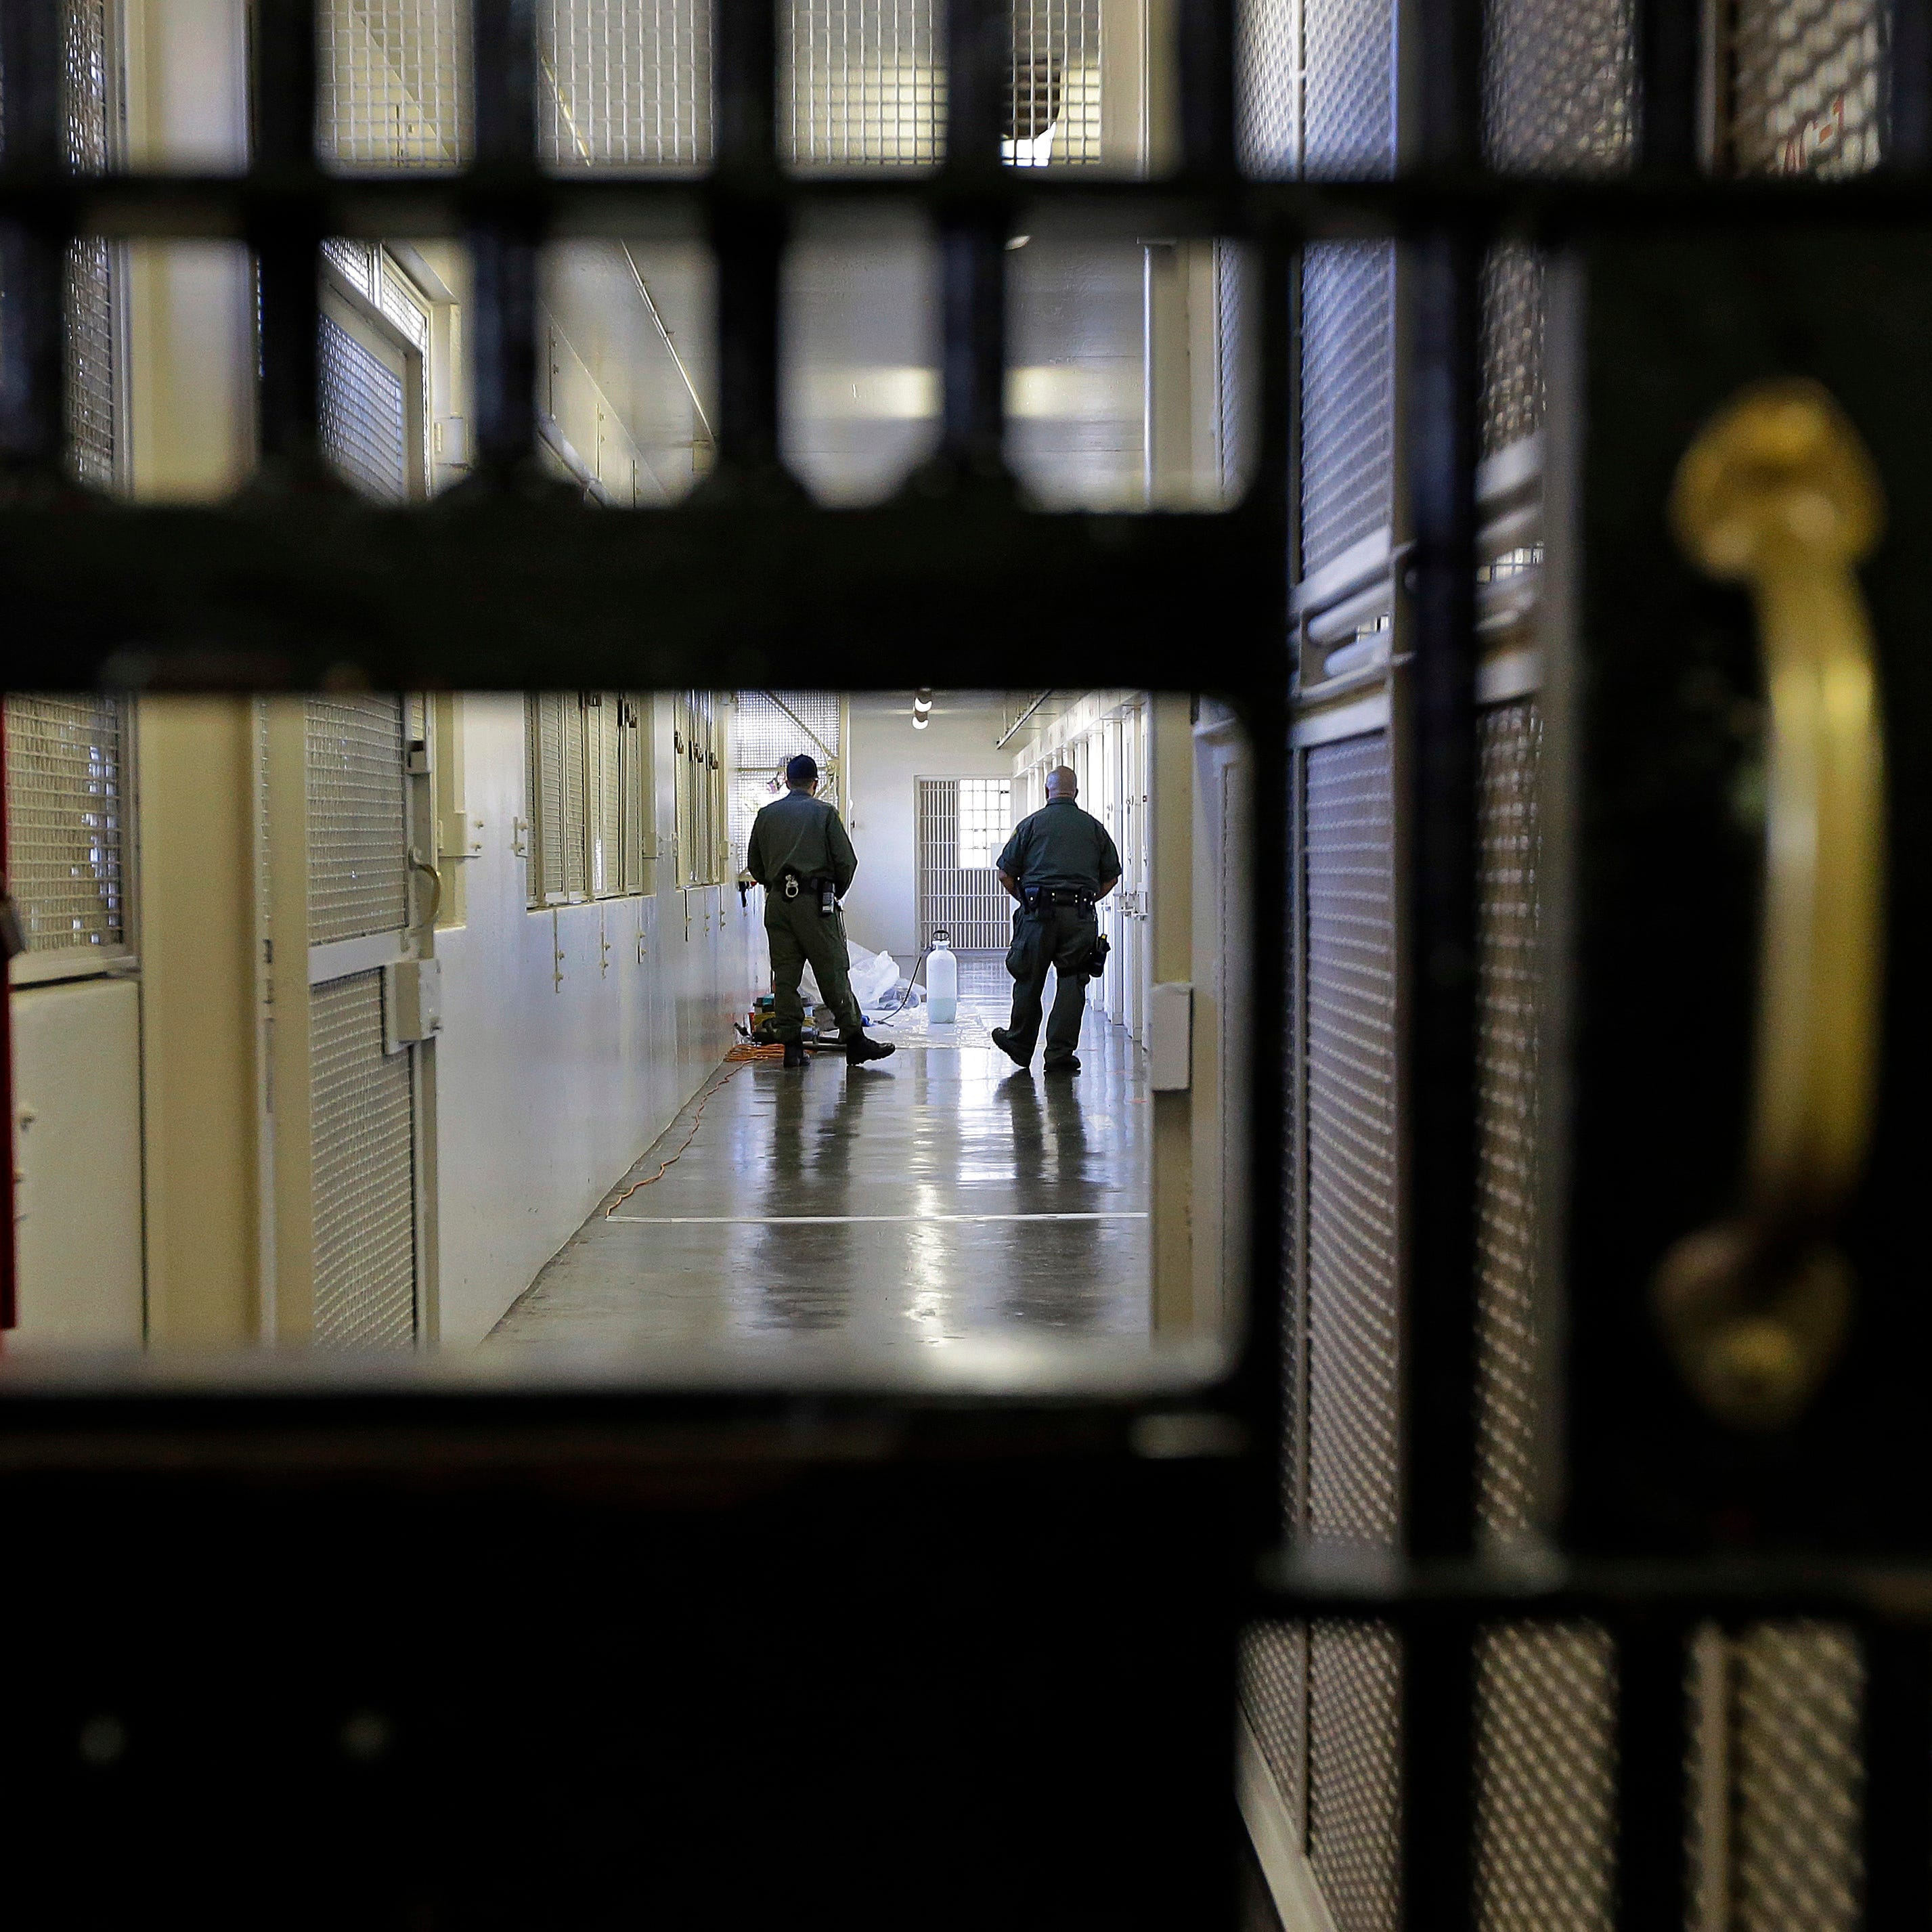 California governor to freeze death penalty, says it's 'fundamentally immoral' and biased